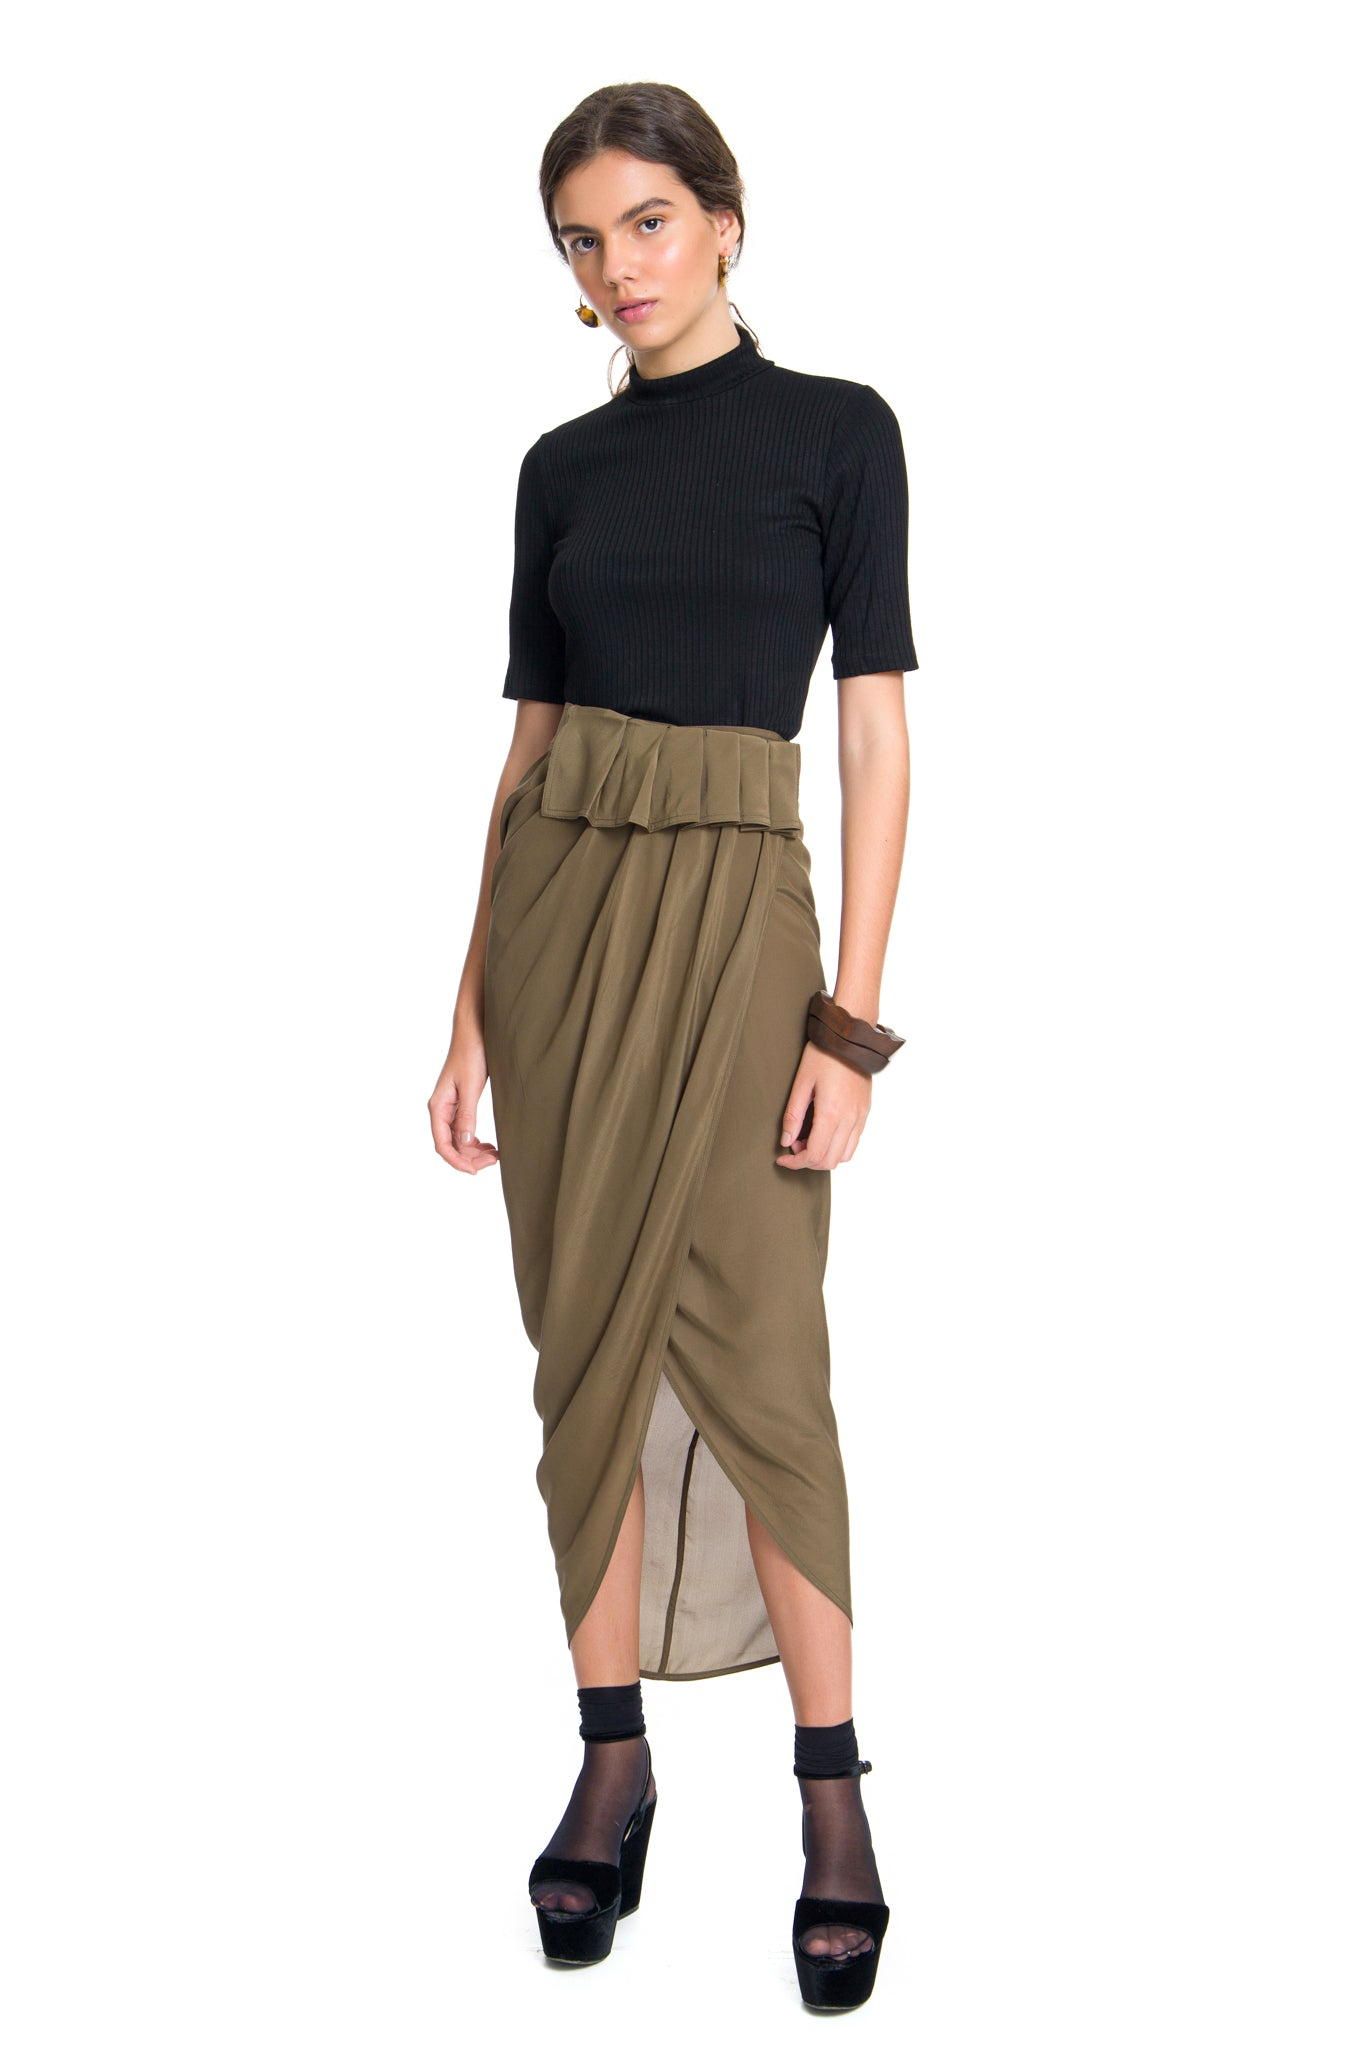 MILITARY ENVELOPE SKIRT